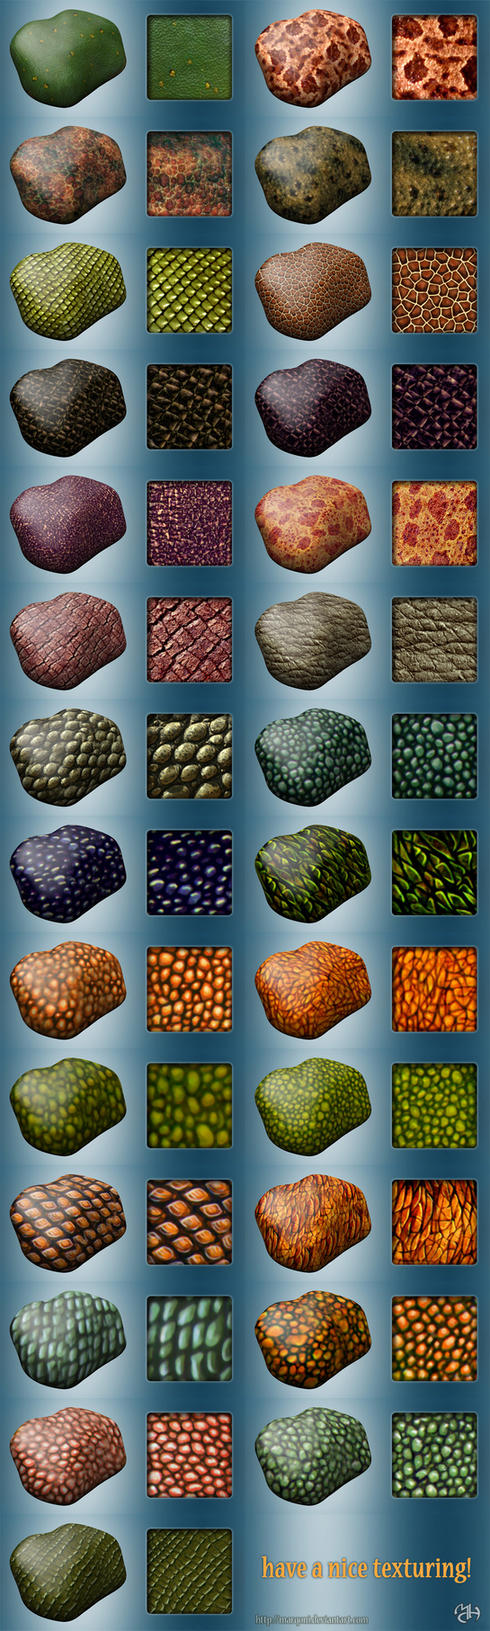 Dragons textures for sculptris by Marqoni